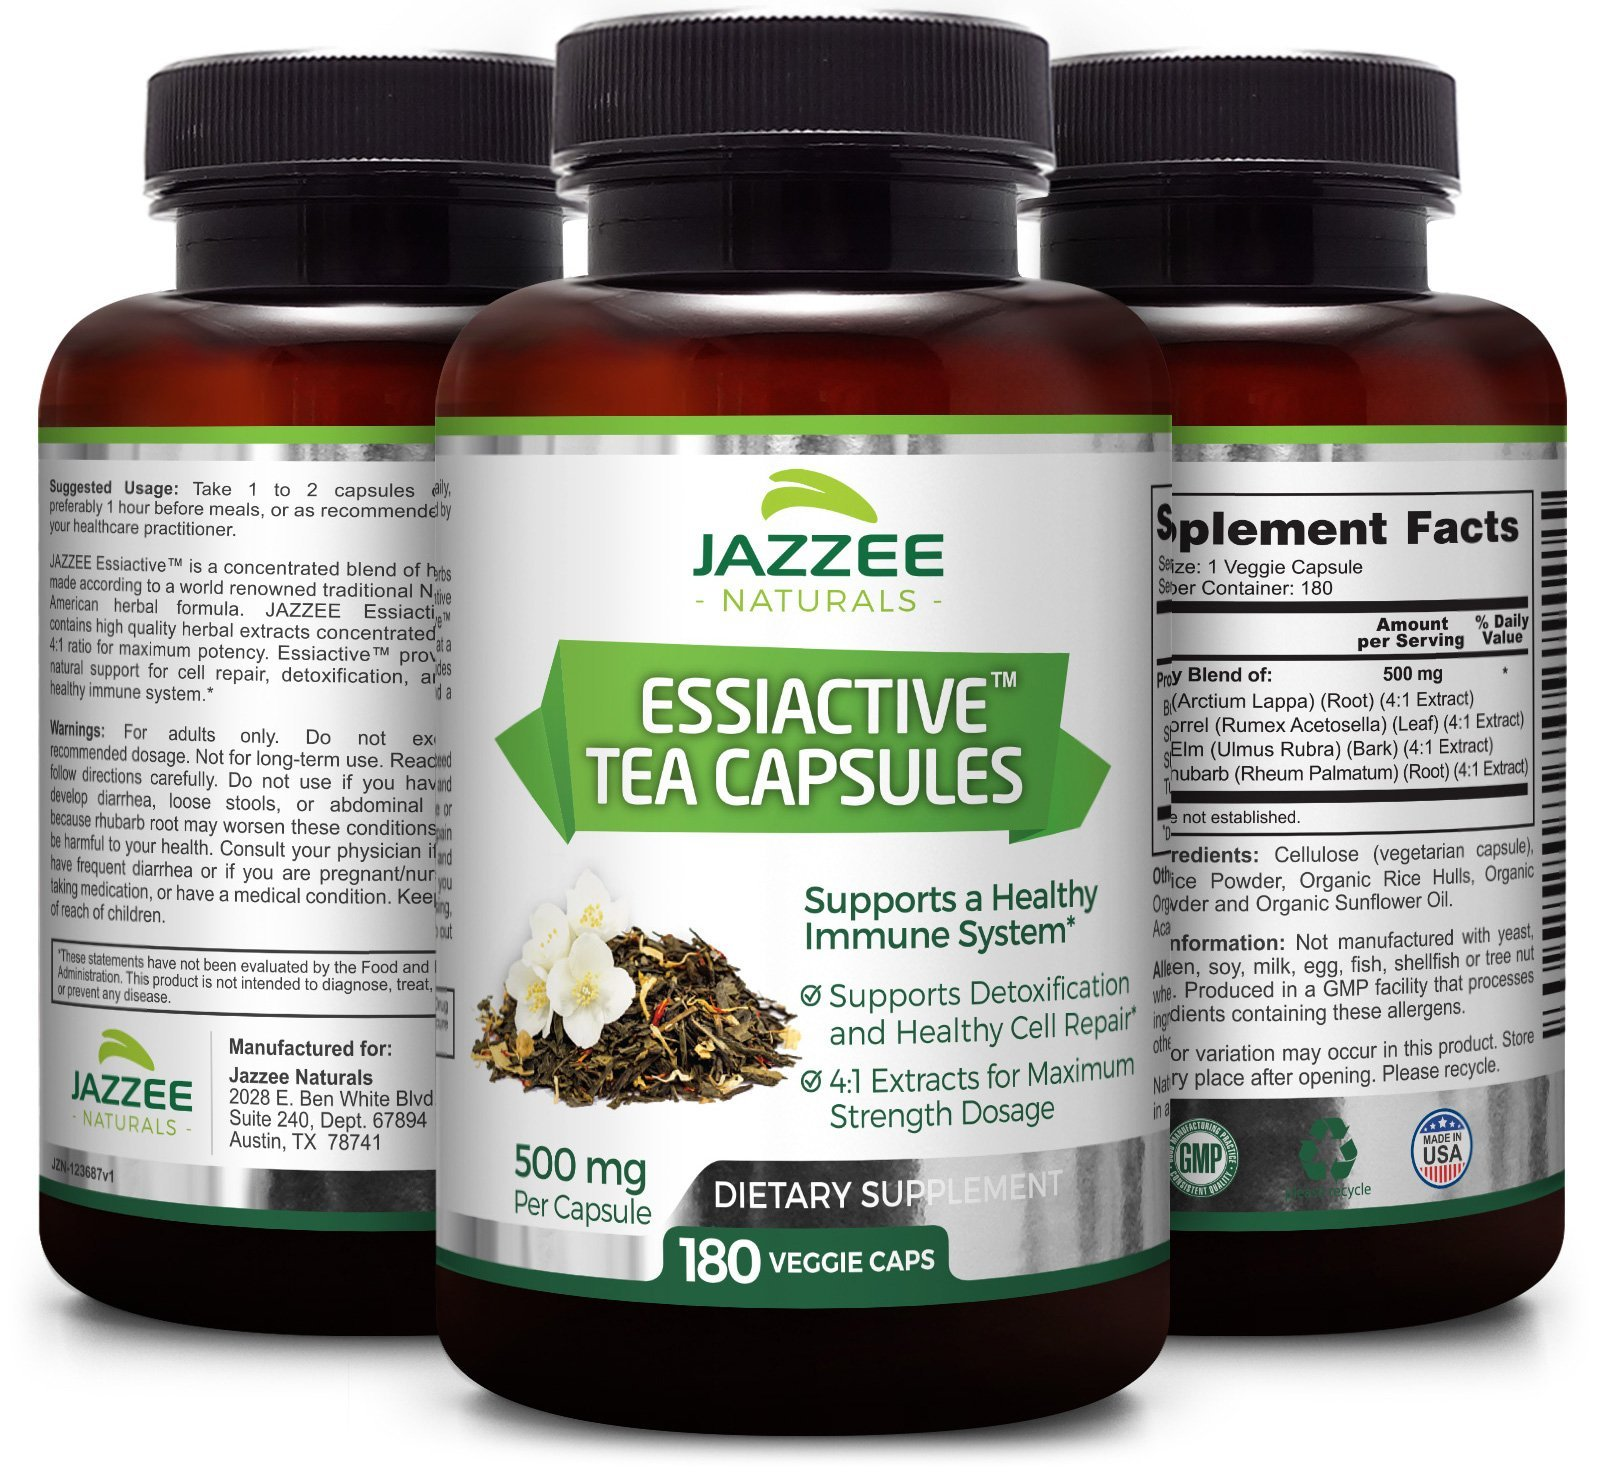 Essiac Tea Capsules | 500 mg per Capsule | 4X Concentrated Extract is the Strongest Essiac Supplement Available | 180 Veggie Capsules | Vegetarian / Vegan | Supports a Healthy Immune System by Jazzee Naturals